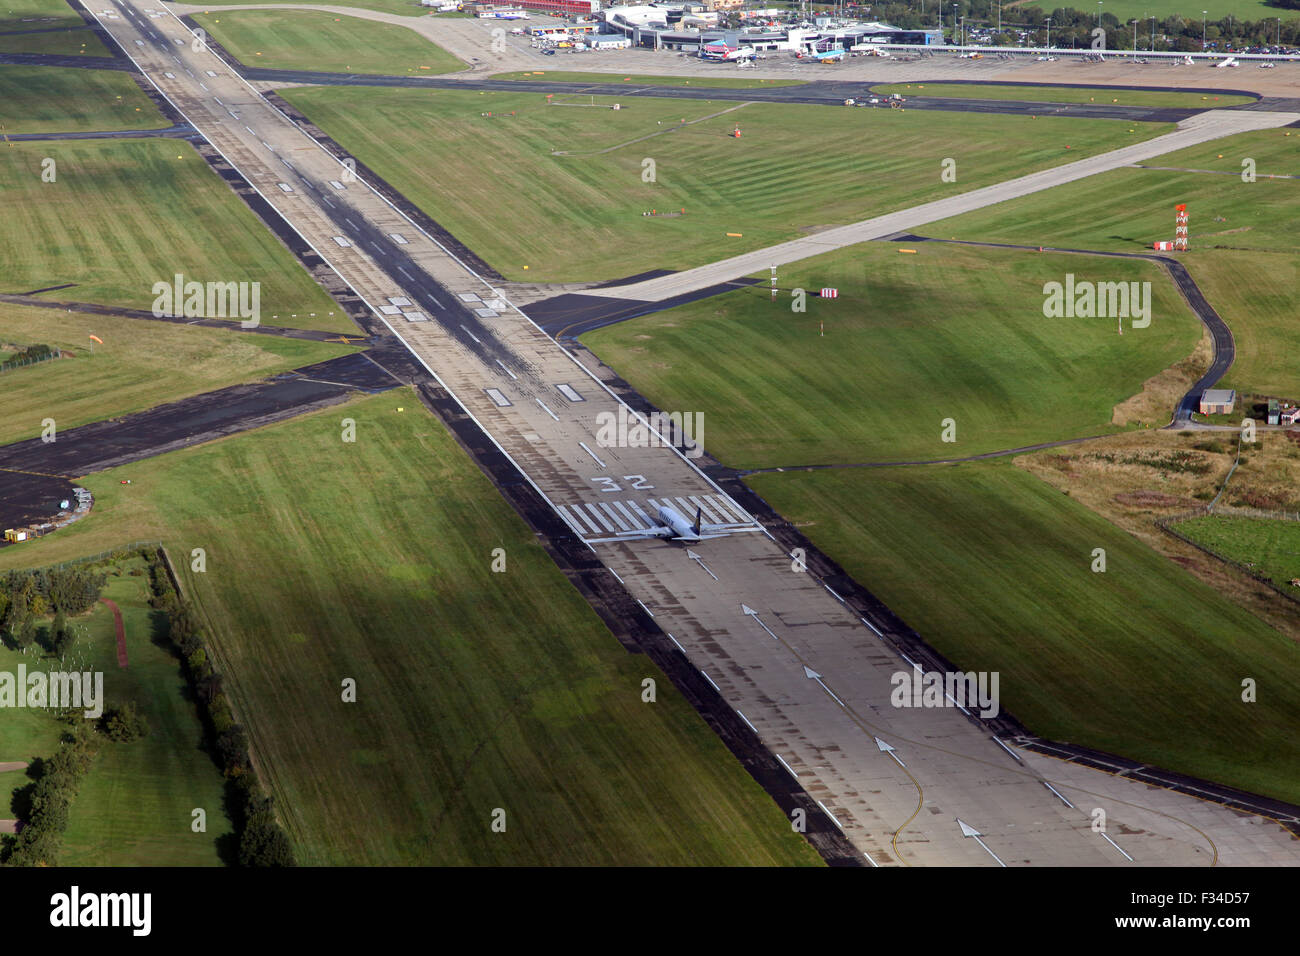 aerial view of a RyanAir jet taking off from Leeds Bradford International Airport, UK - Stock Image